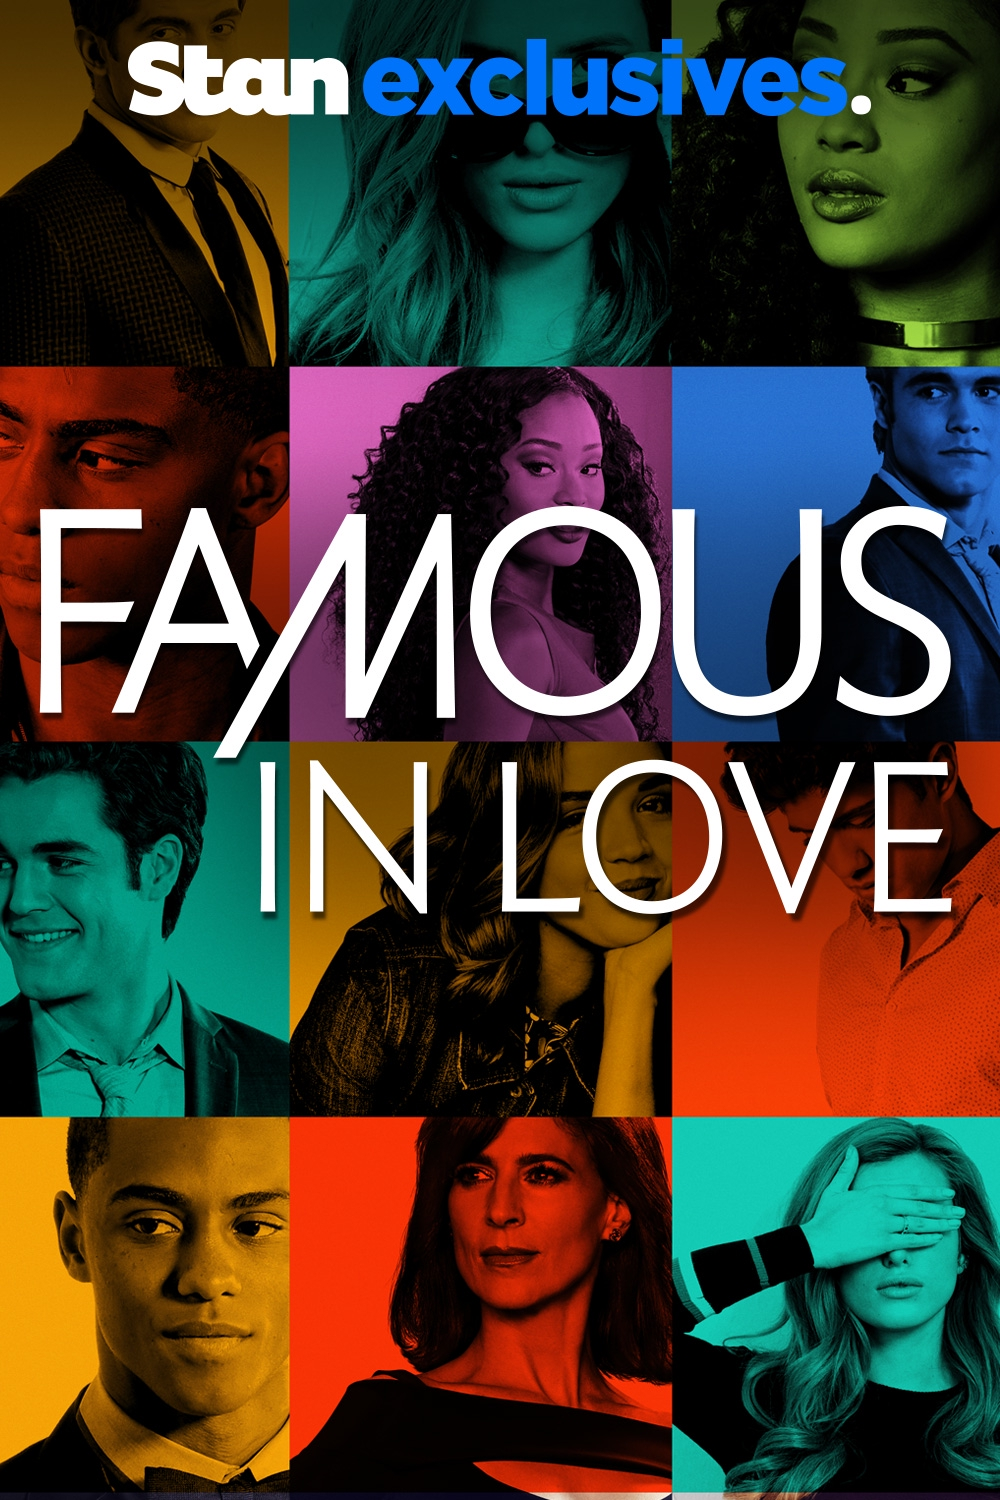 famous in love stream